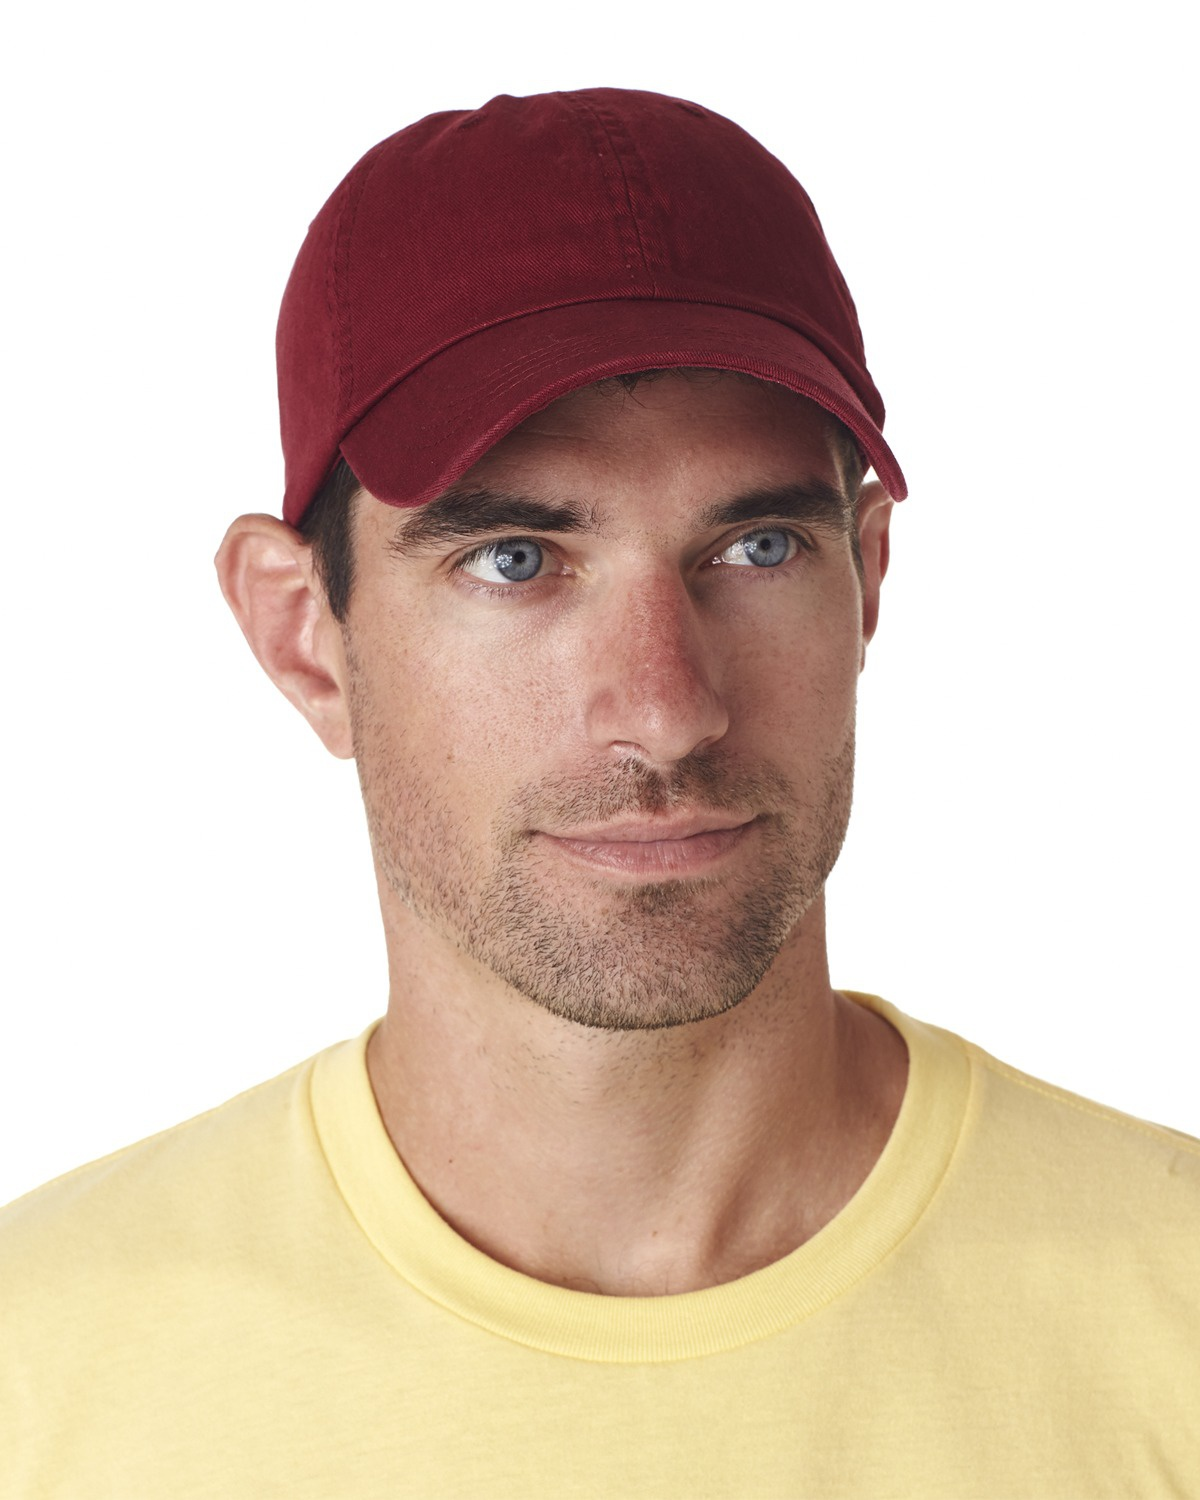 'UltraClub 8102 Adult Classic Cut Chino Cotton Twill Unstructured Cap'